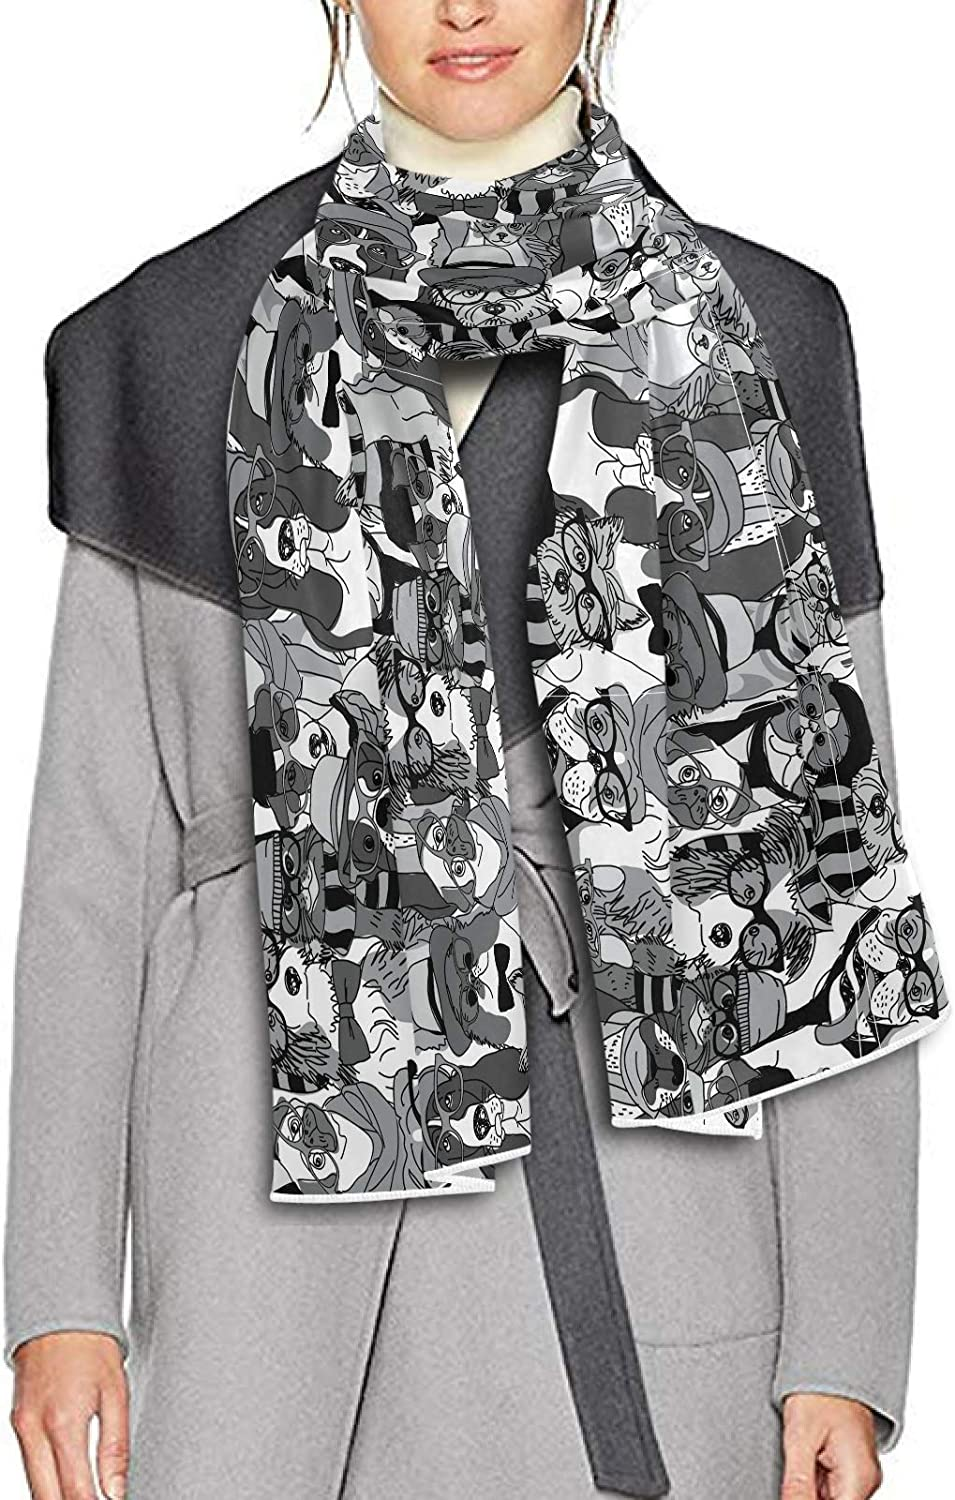 Scarf for Women and Men Fashion Cats Dogs Shawl Wraps Blanket Scarf Soft Winter Large Scarves Lightweight